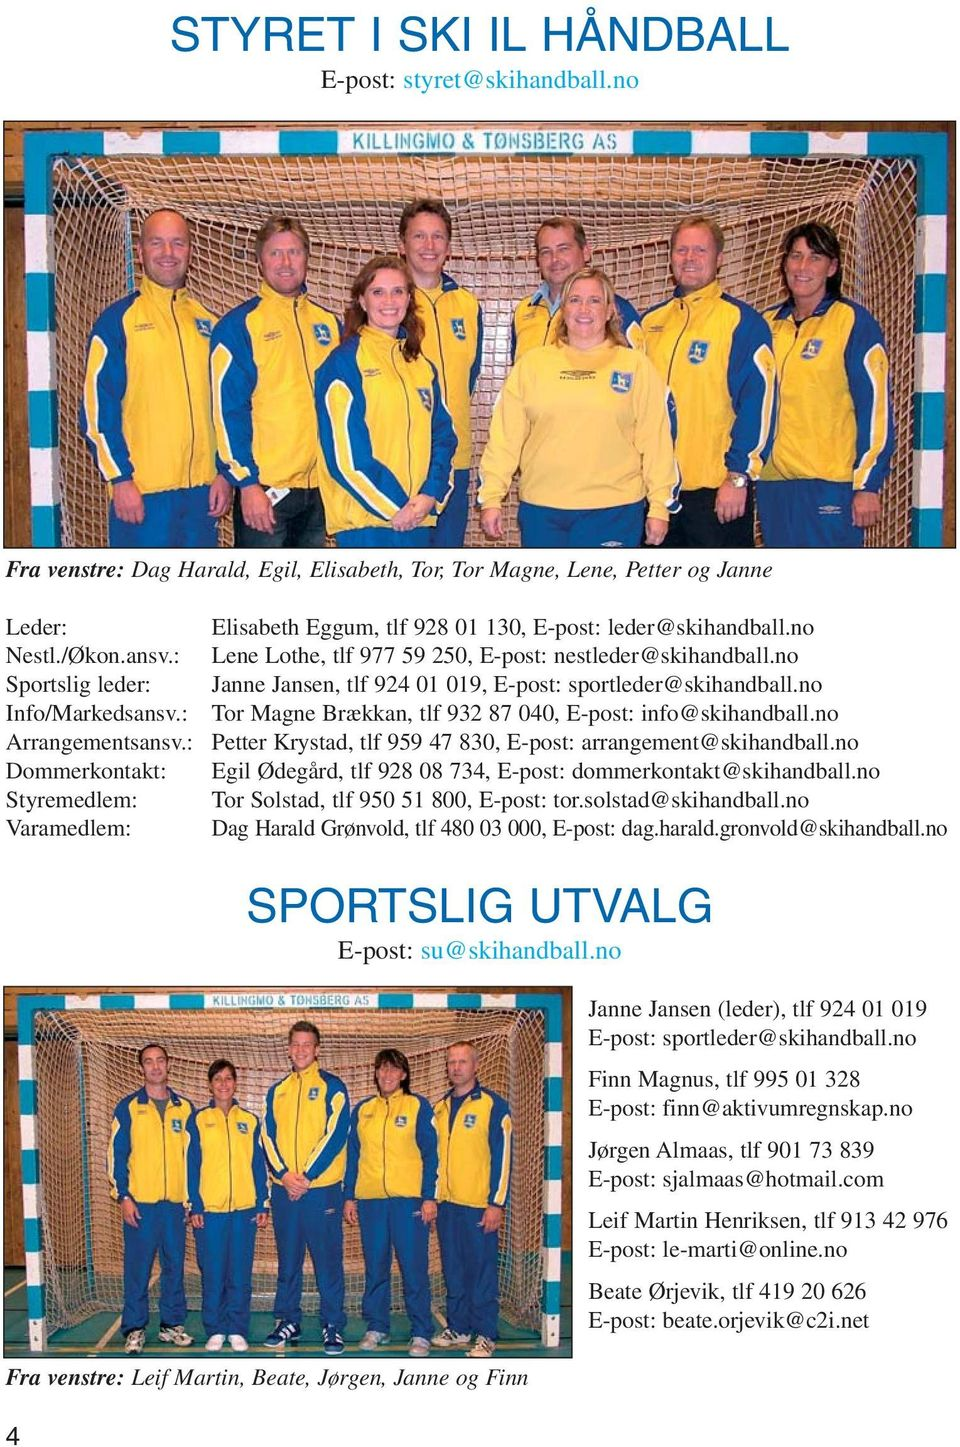 no Janne Jansen, tlf 924 01 019, E-post: sportleder@skihandball.no Tor Magne Brækkan, tlf 932 87 040, E-post: info@skihandball.no Petter Krystad, tlf 959 47 830, E-post: arrangement@skihandball.